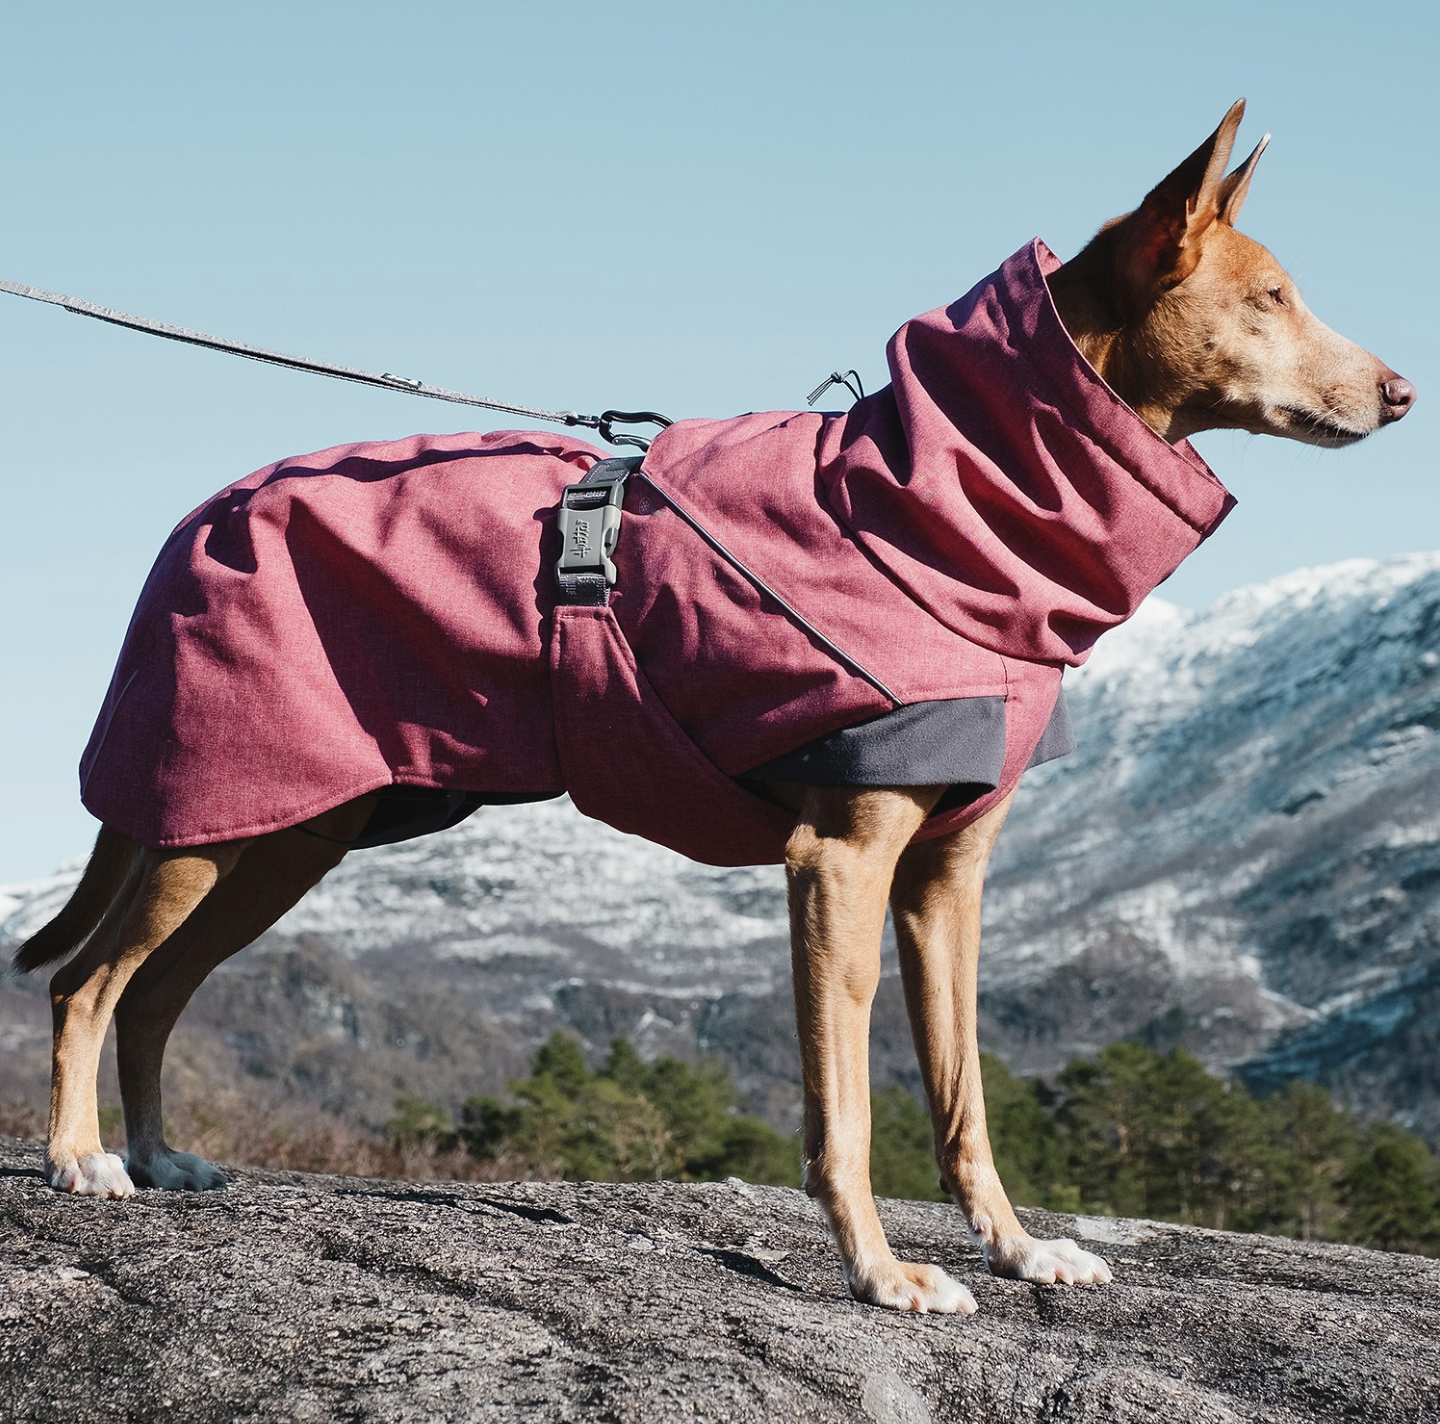 A mountain dog with a big red coat.